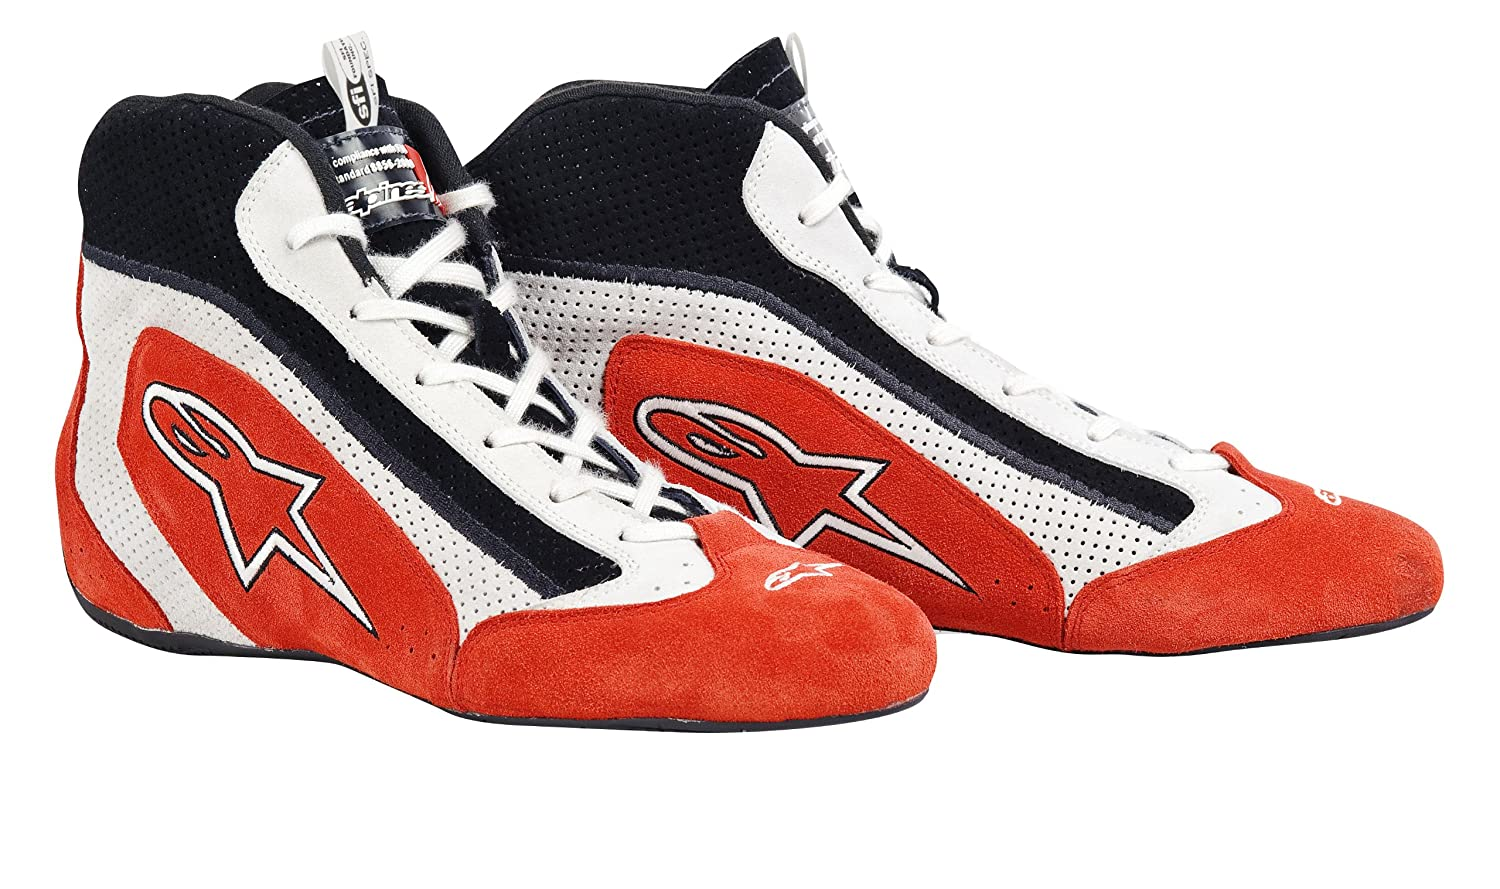 Alpinestars 2710111-31-10.5 Red//Black Size-10.5 SP Shoes